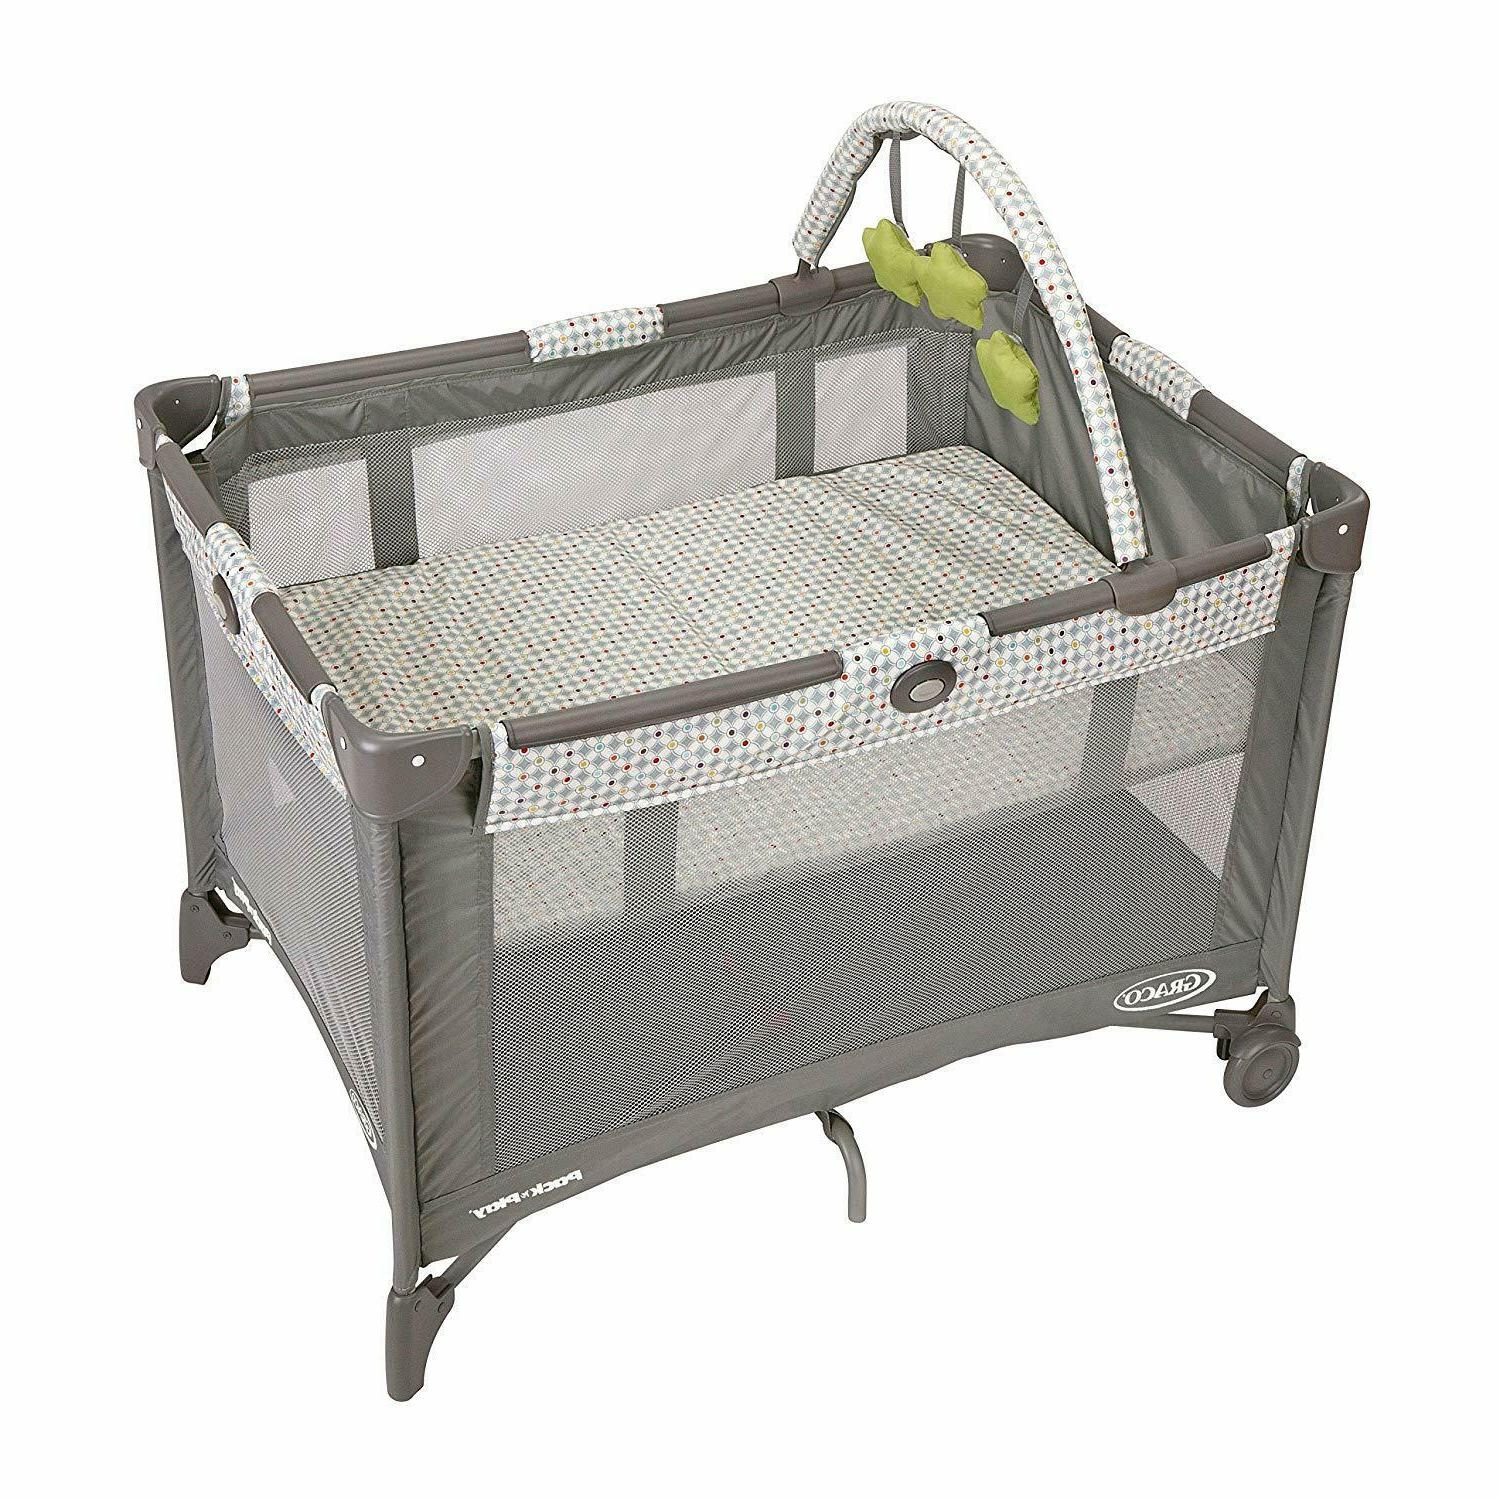 Graco Newborn Bassinet Baby Bed Playard Portable Bassinet Changing Table Travel